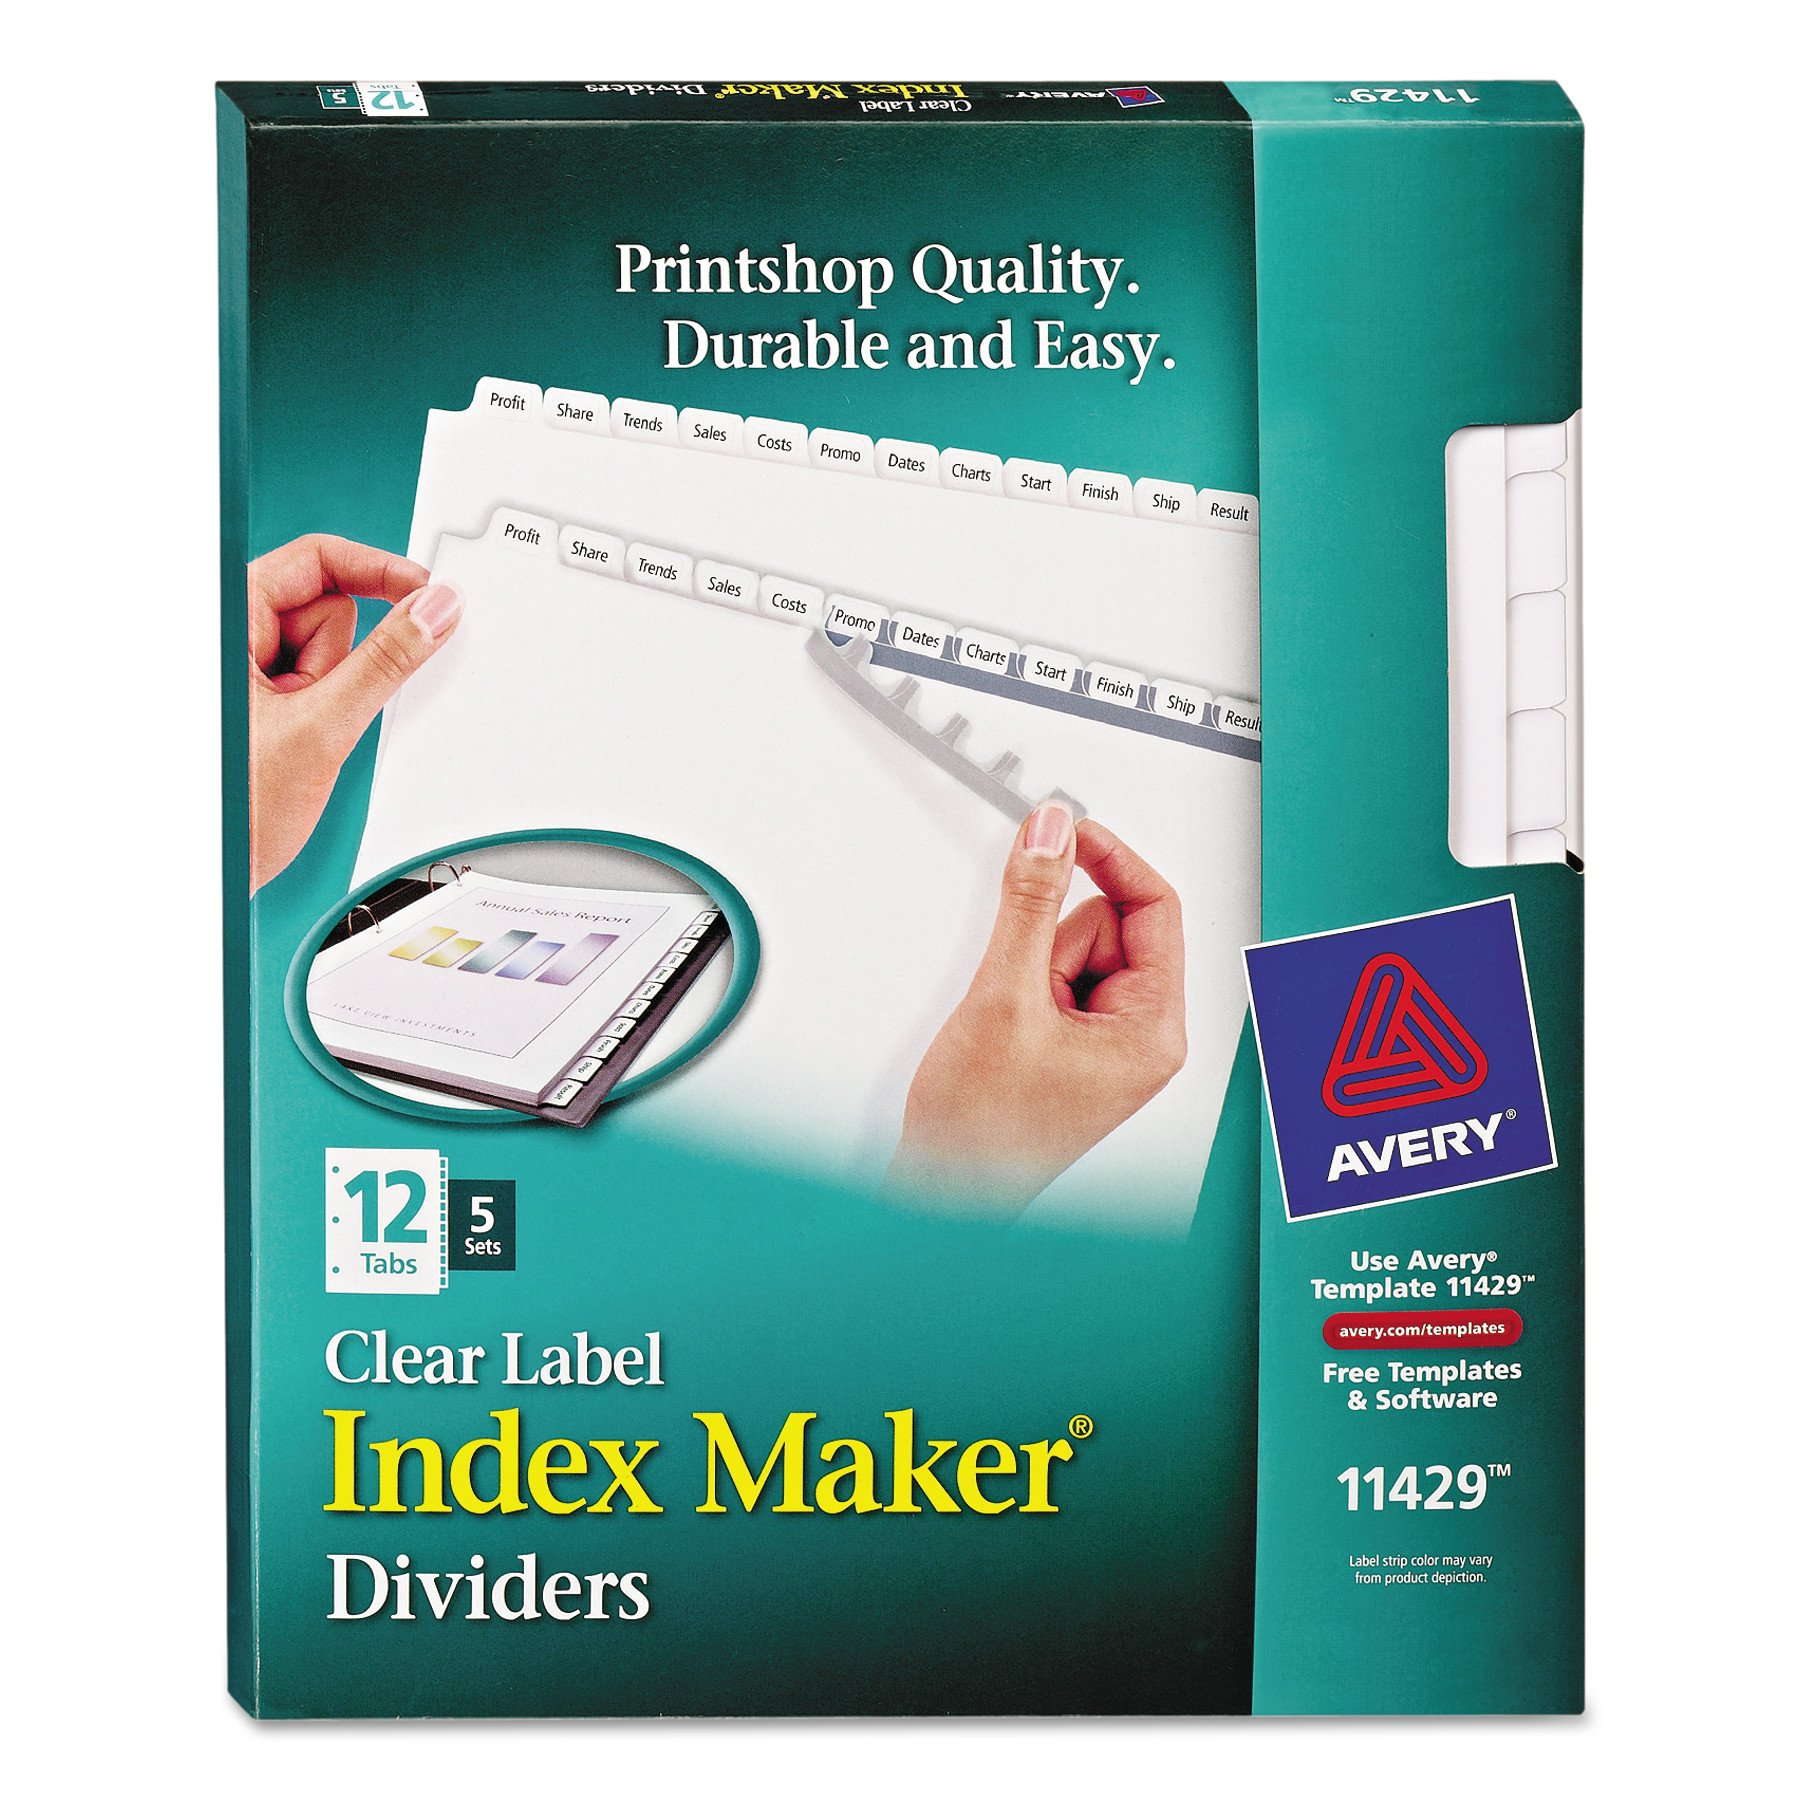 Avery Index Maker Clear Label 8-12 x 11 Inches Dividers with 12 White Tabs, 5 Pack (11429)